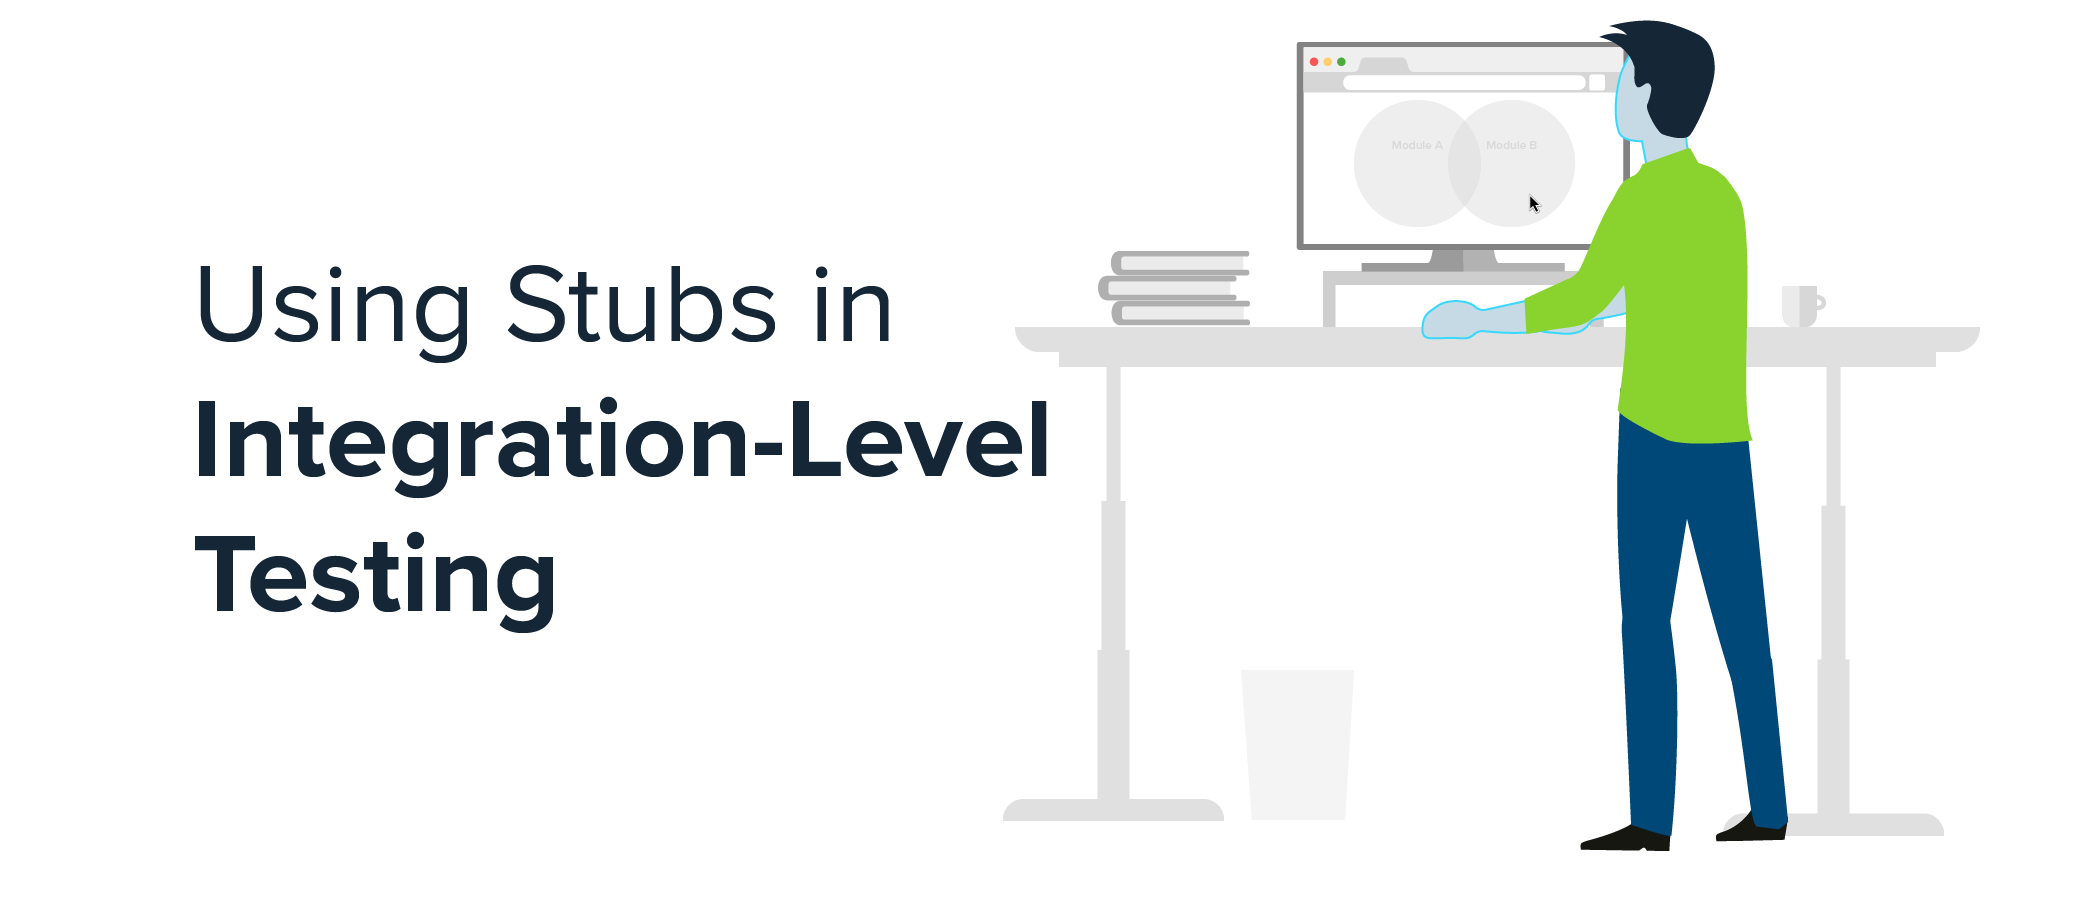 Using Stubs in Integration-Level Testing